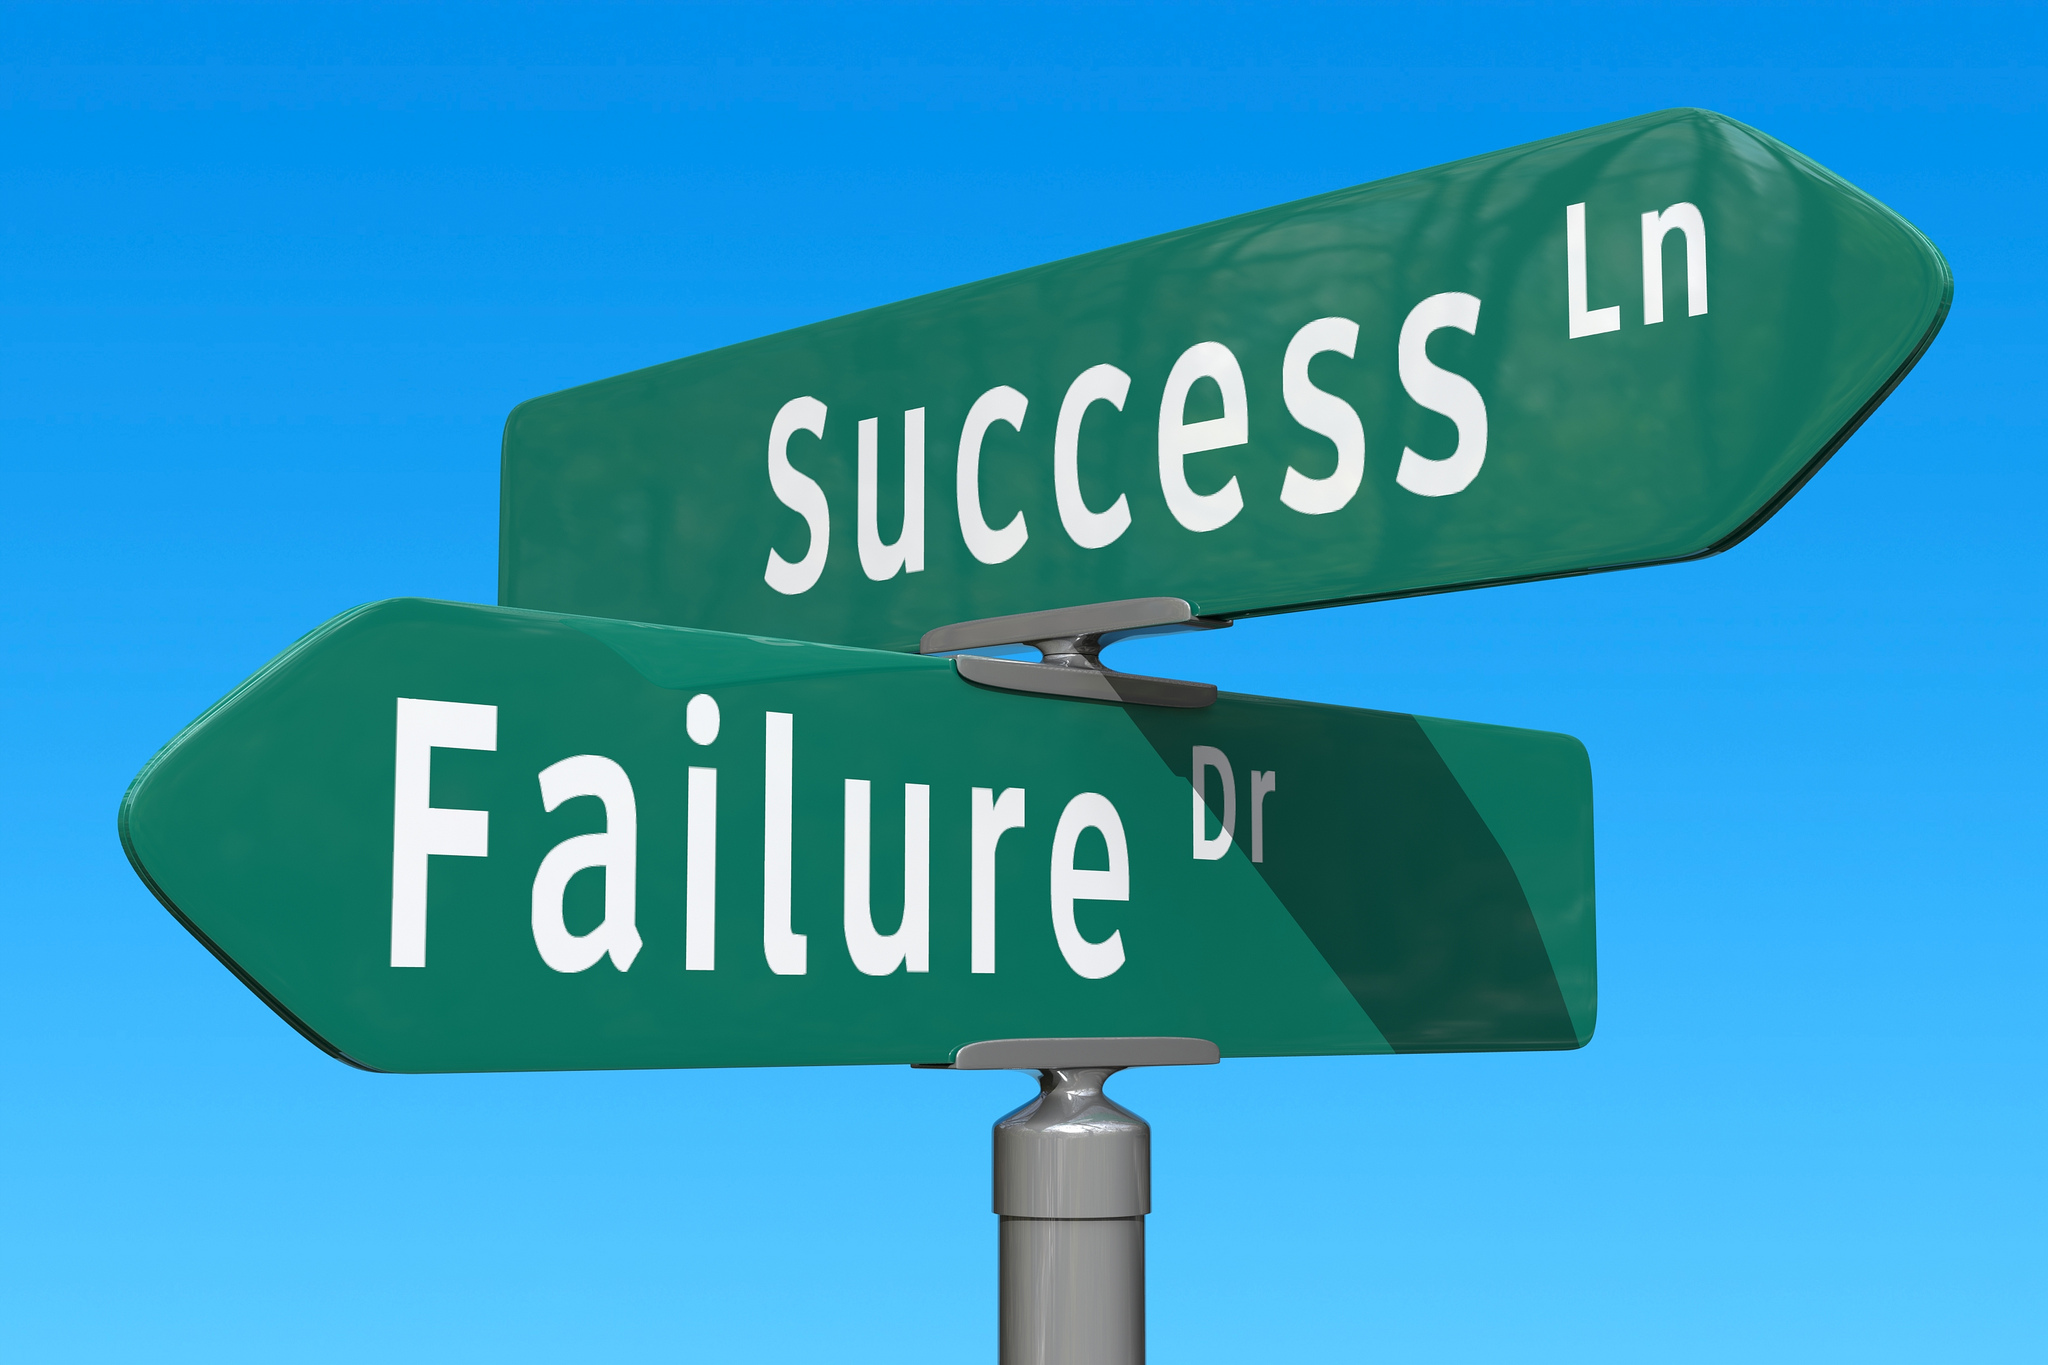 success or fail sme or entrepreneur